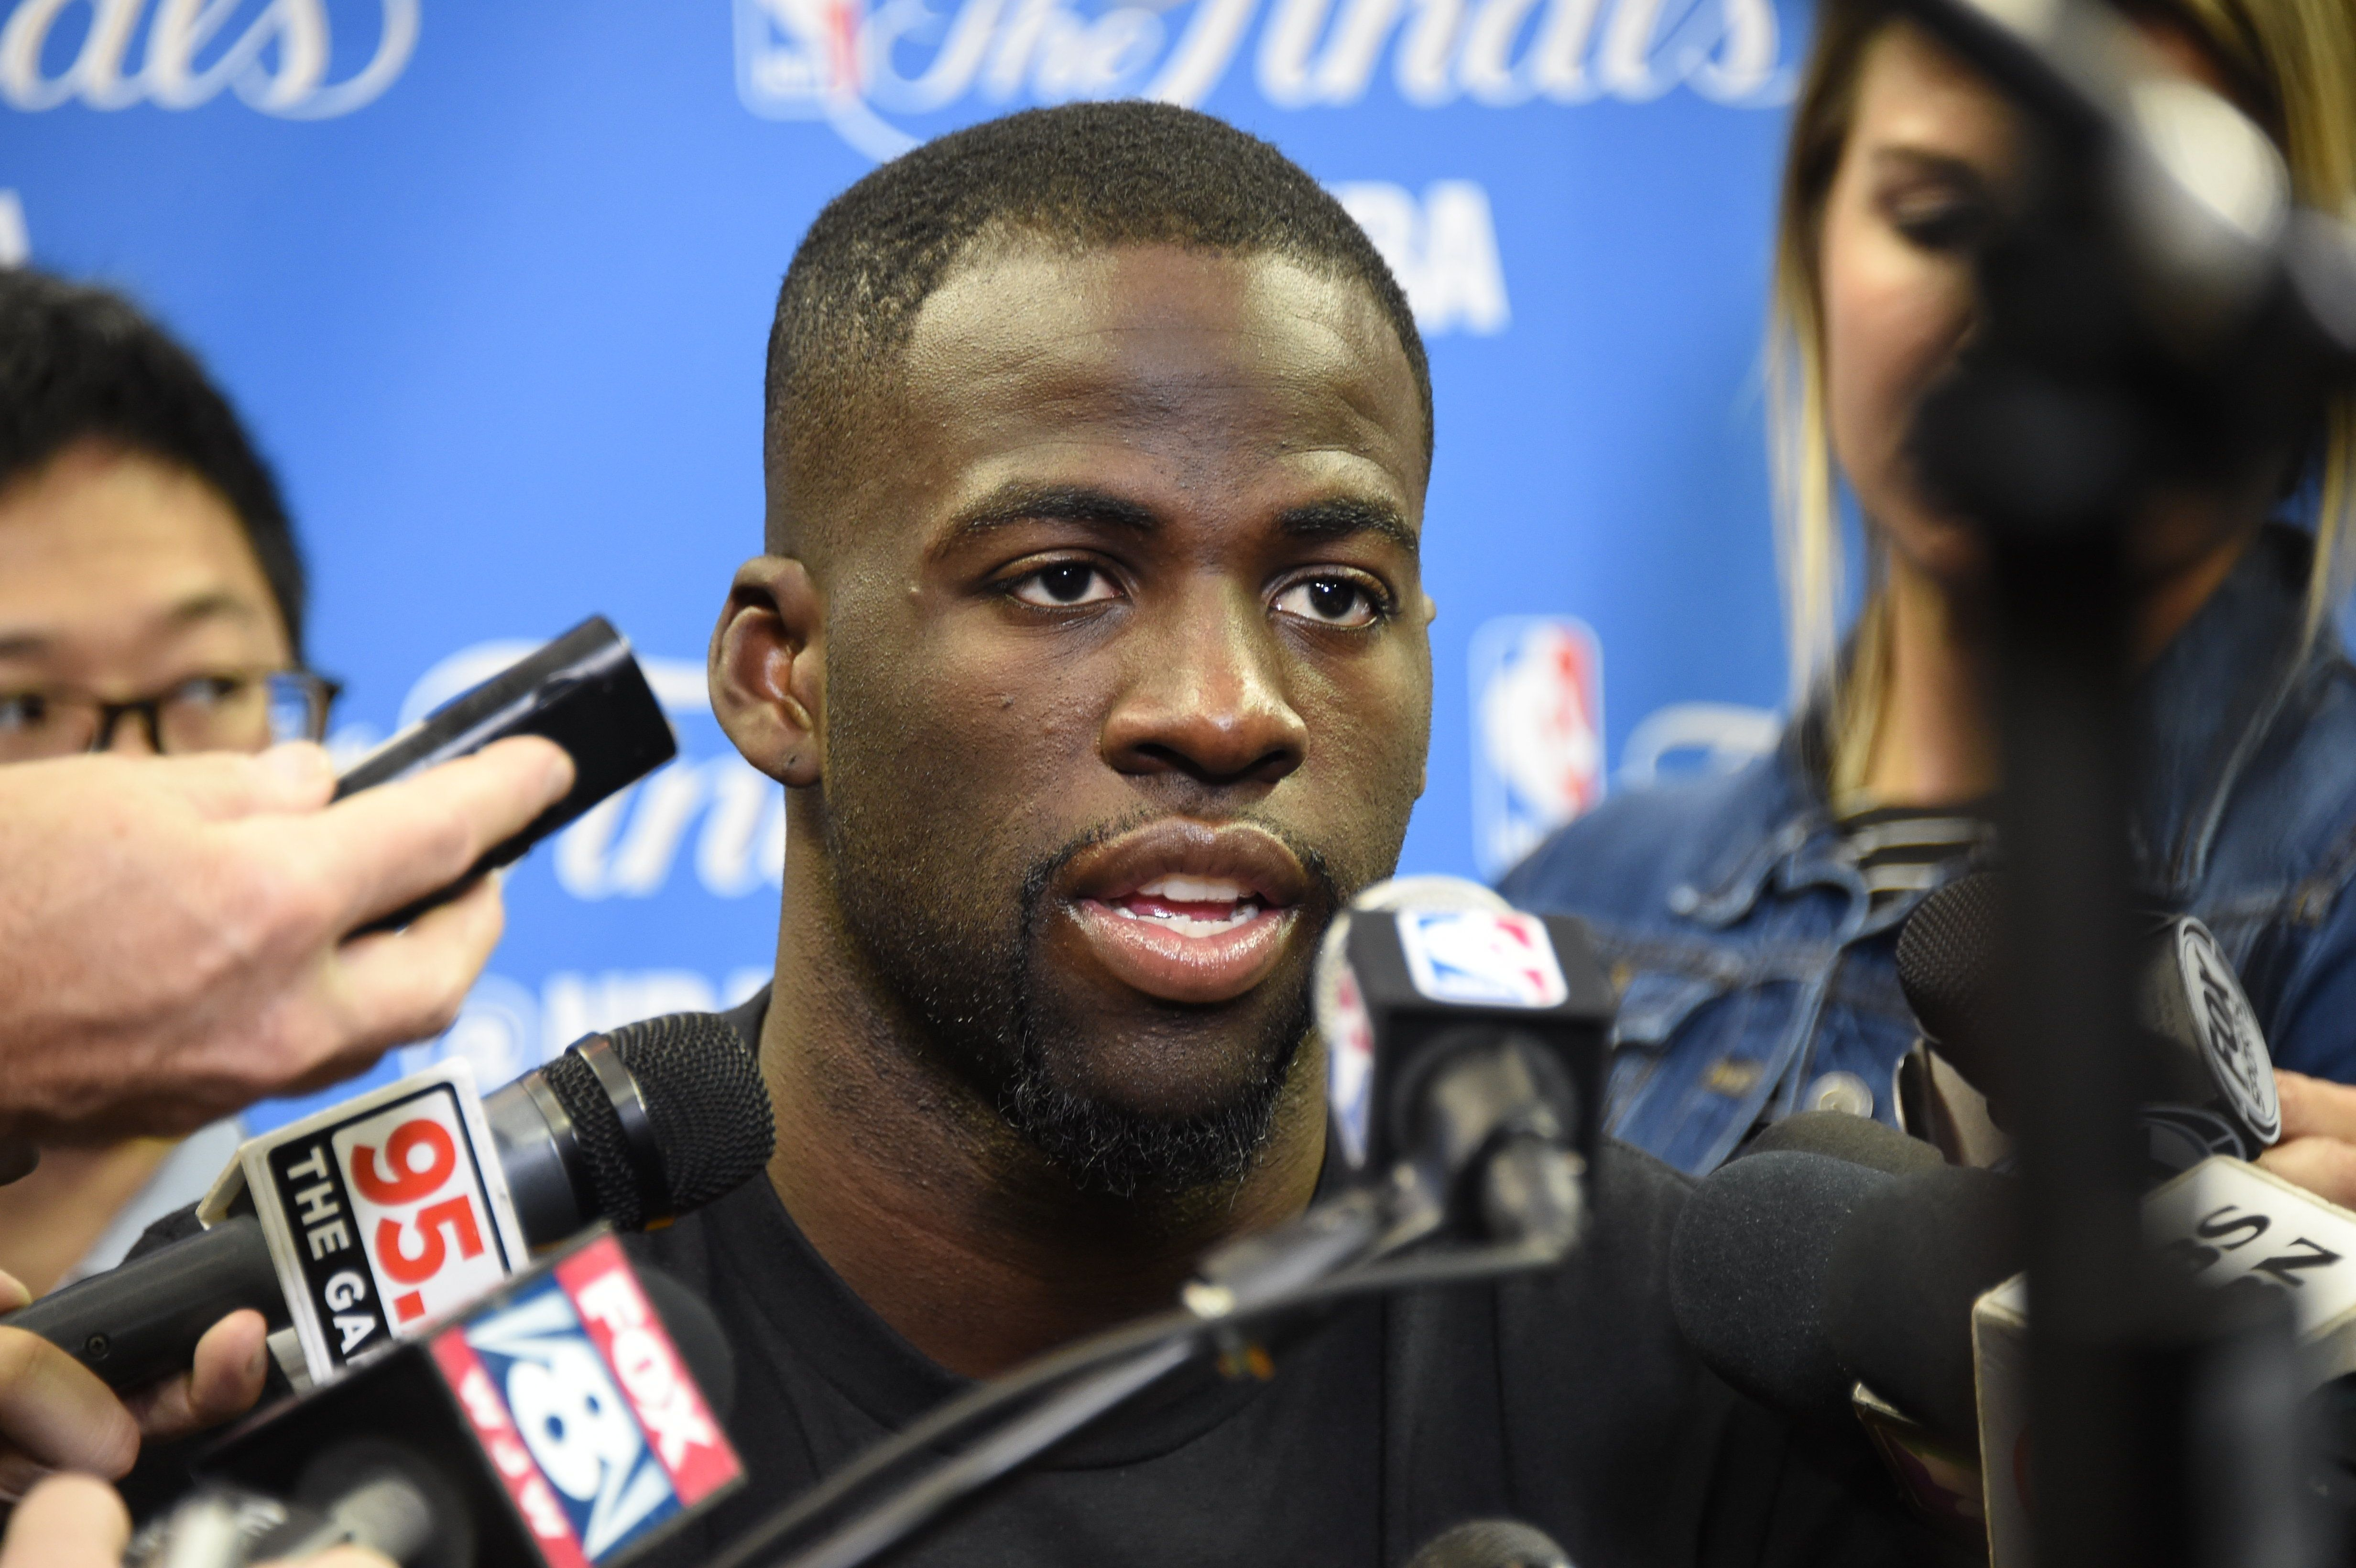 Former MSU football player Jermaine Edmondson suing Draymond Green